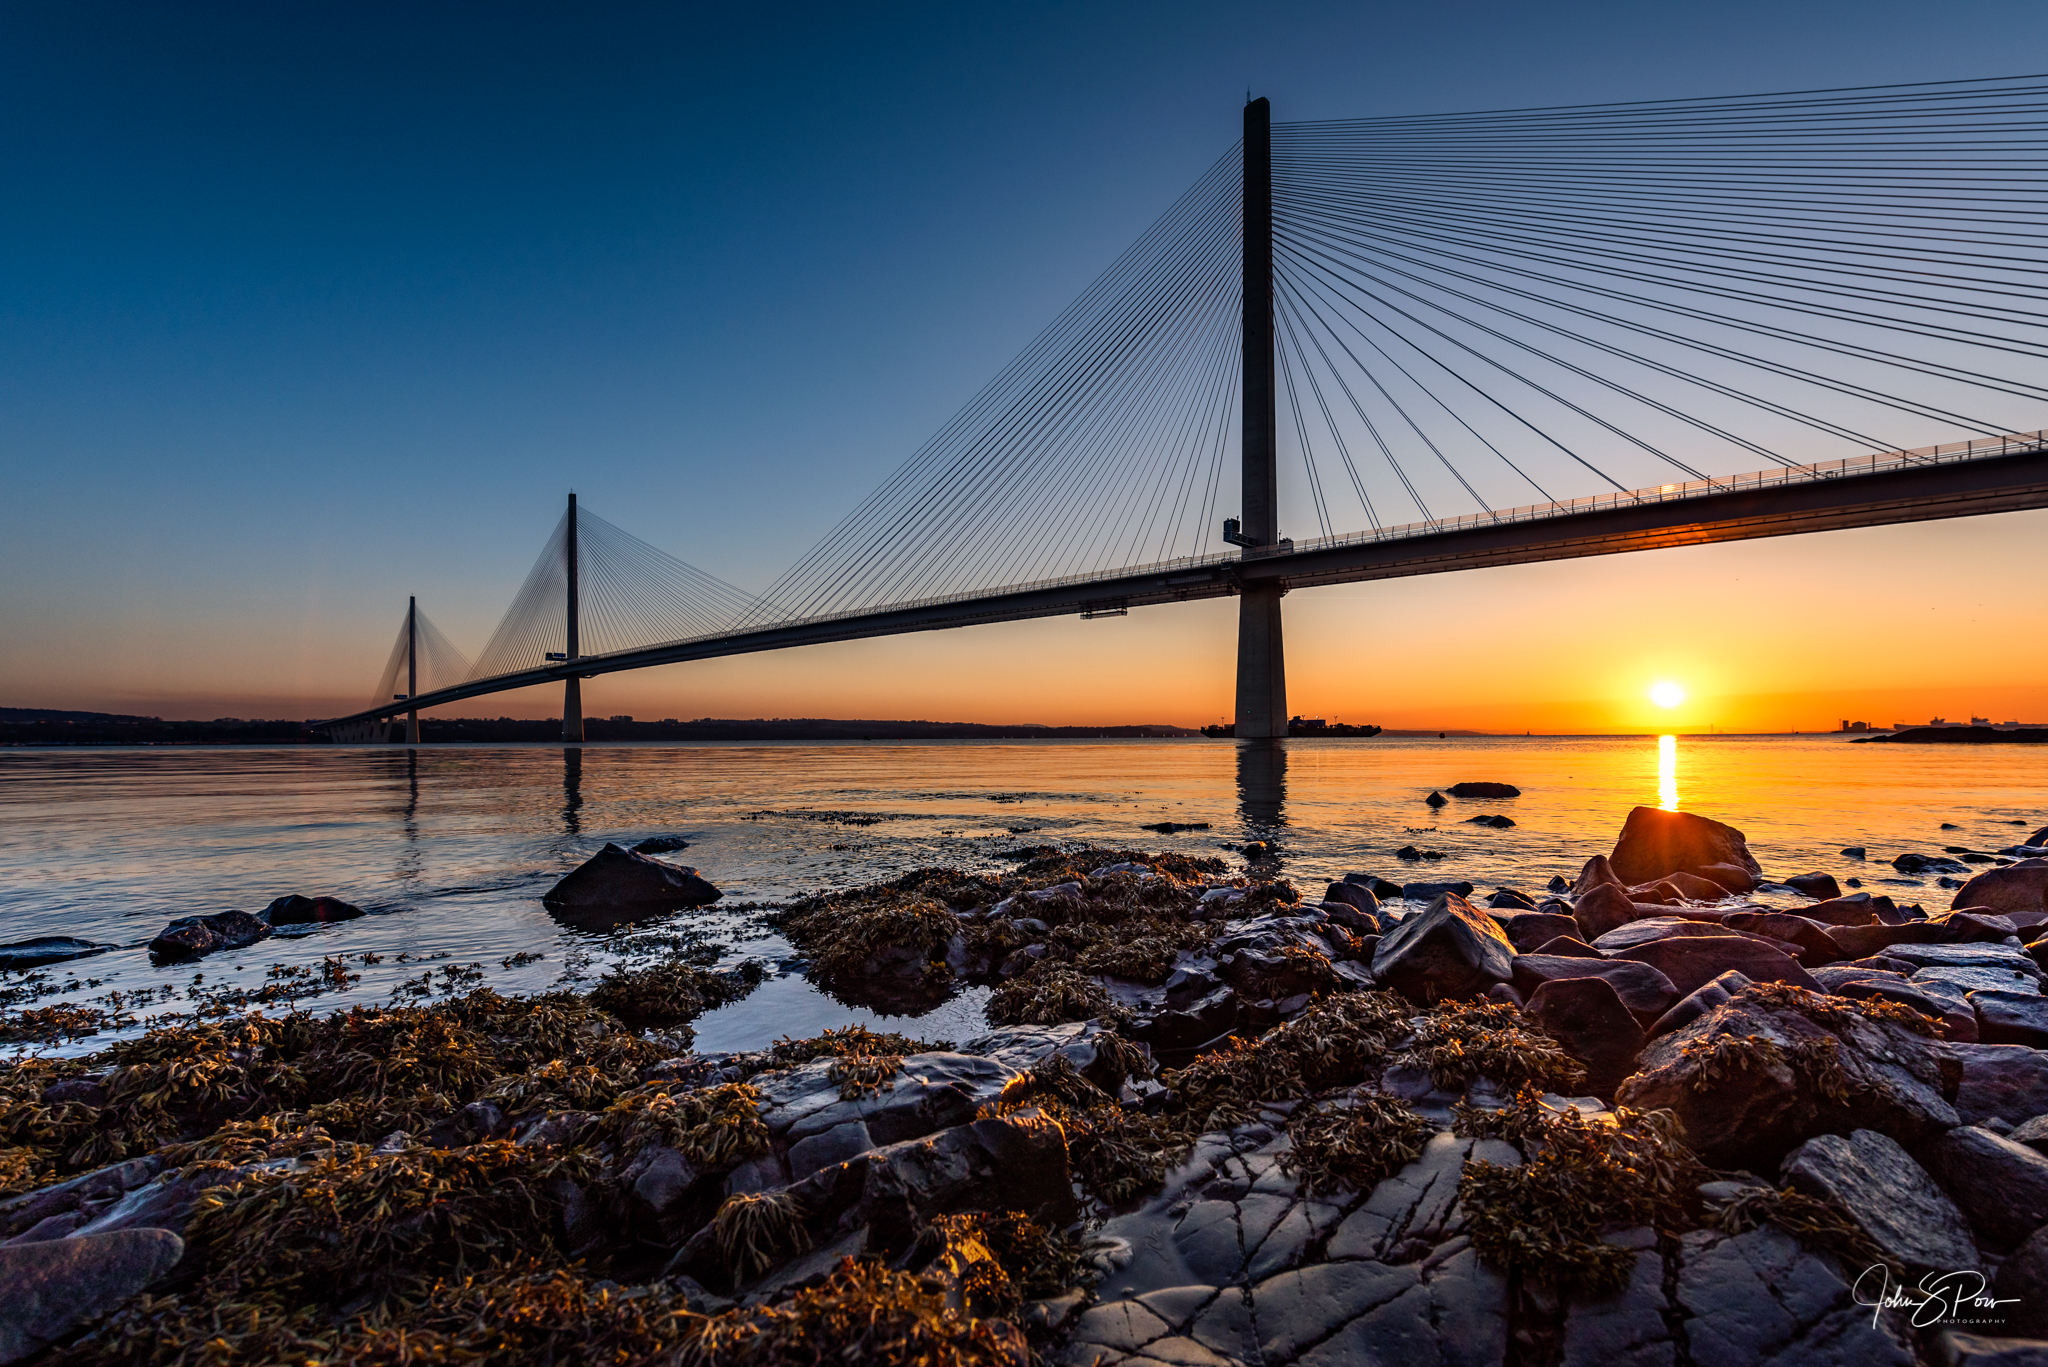 The Queensferry Crossing at Sunset.